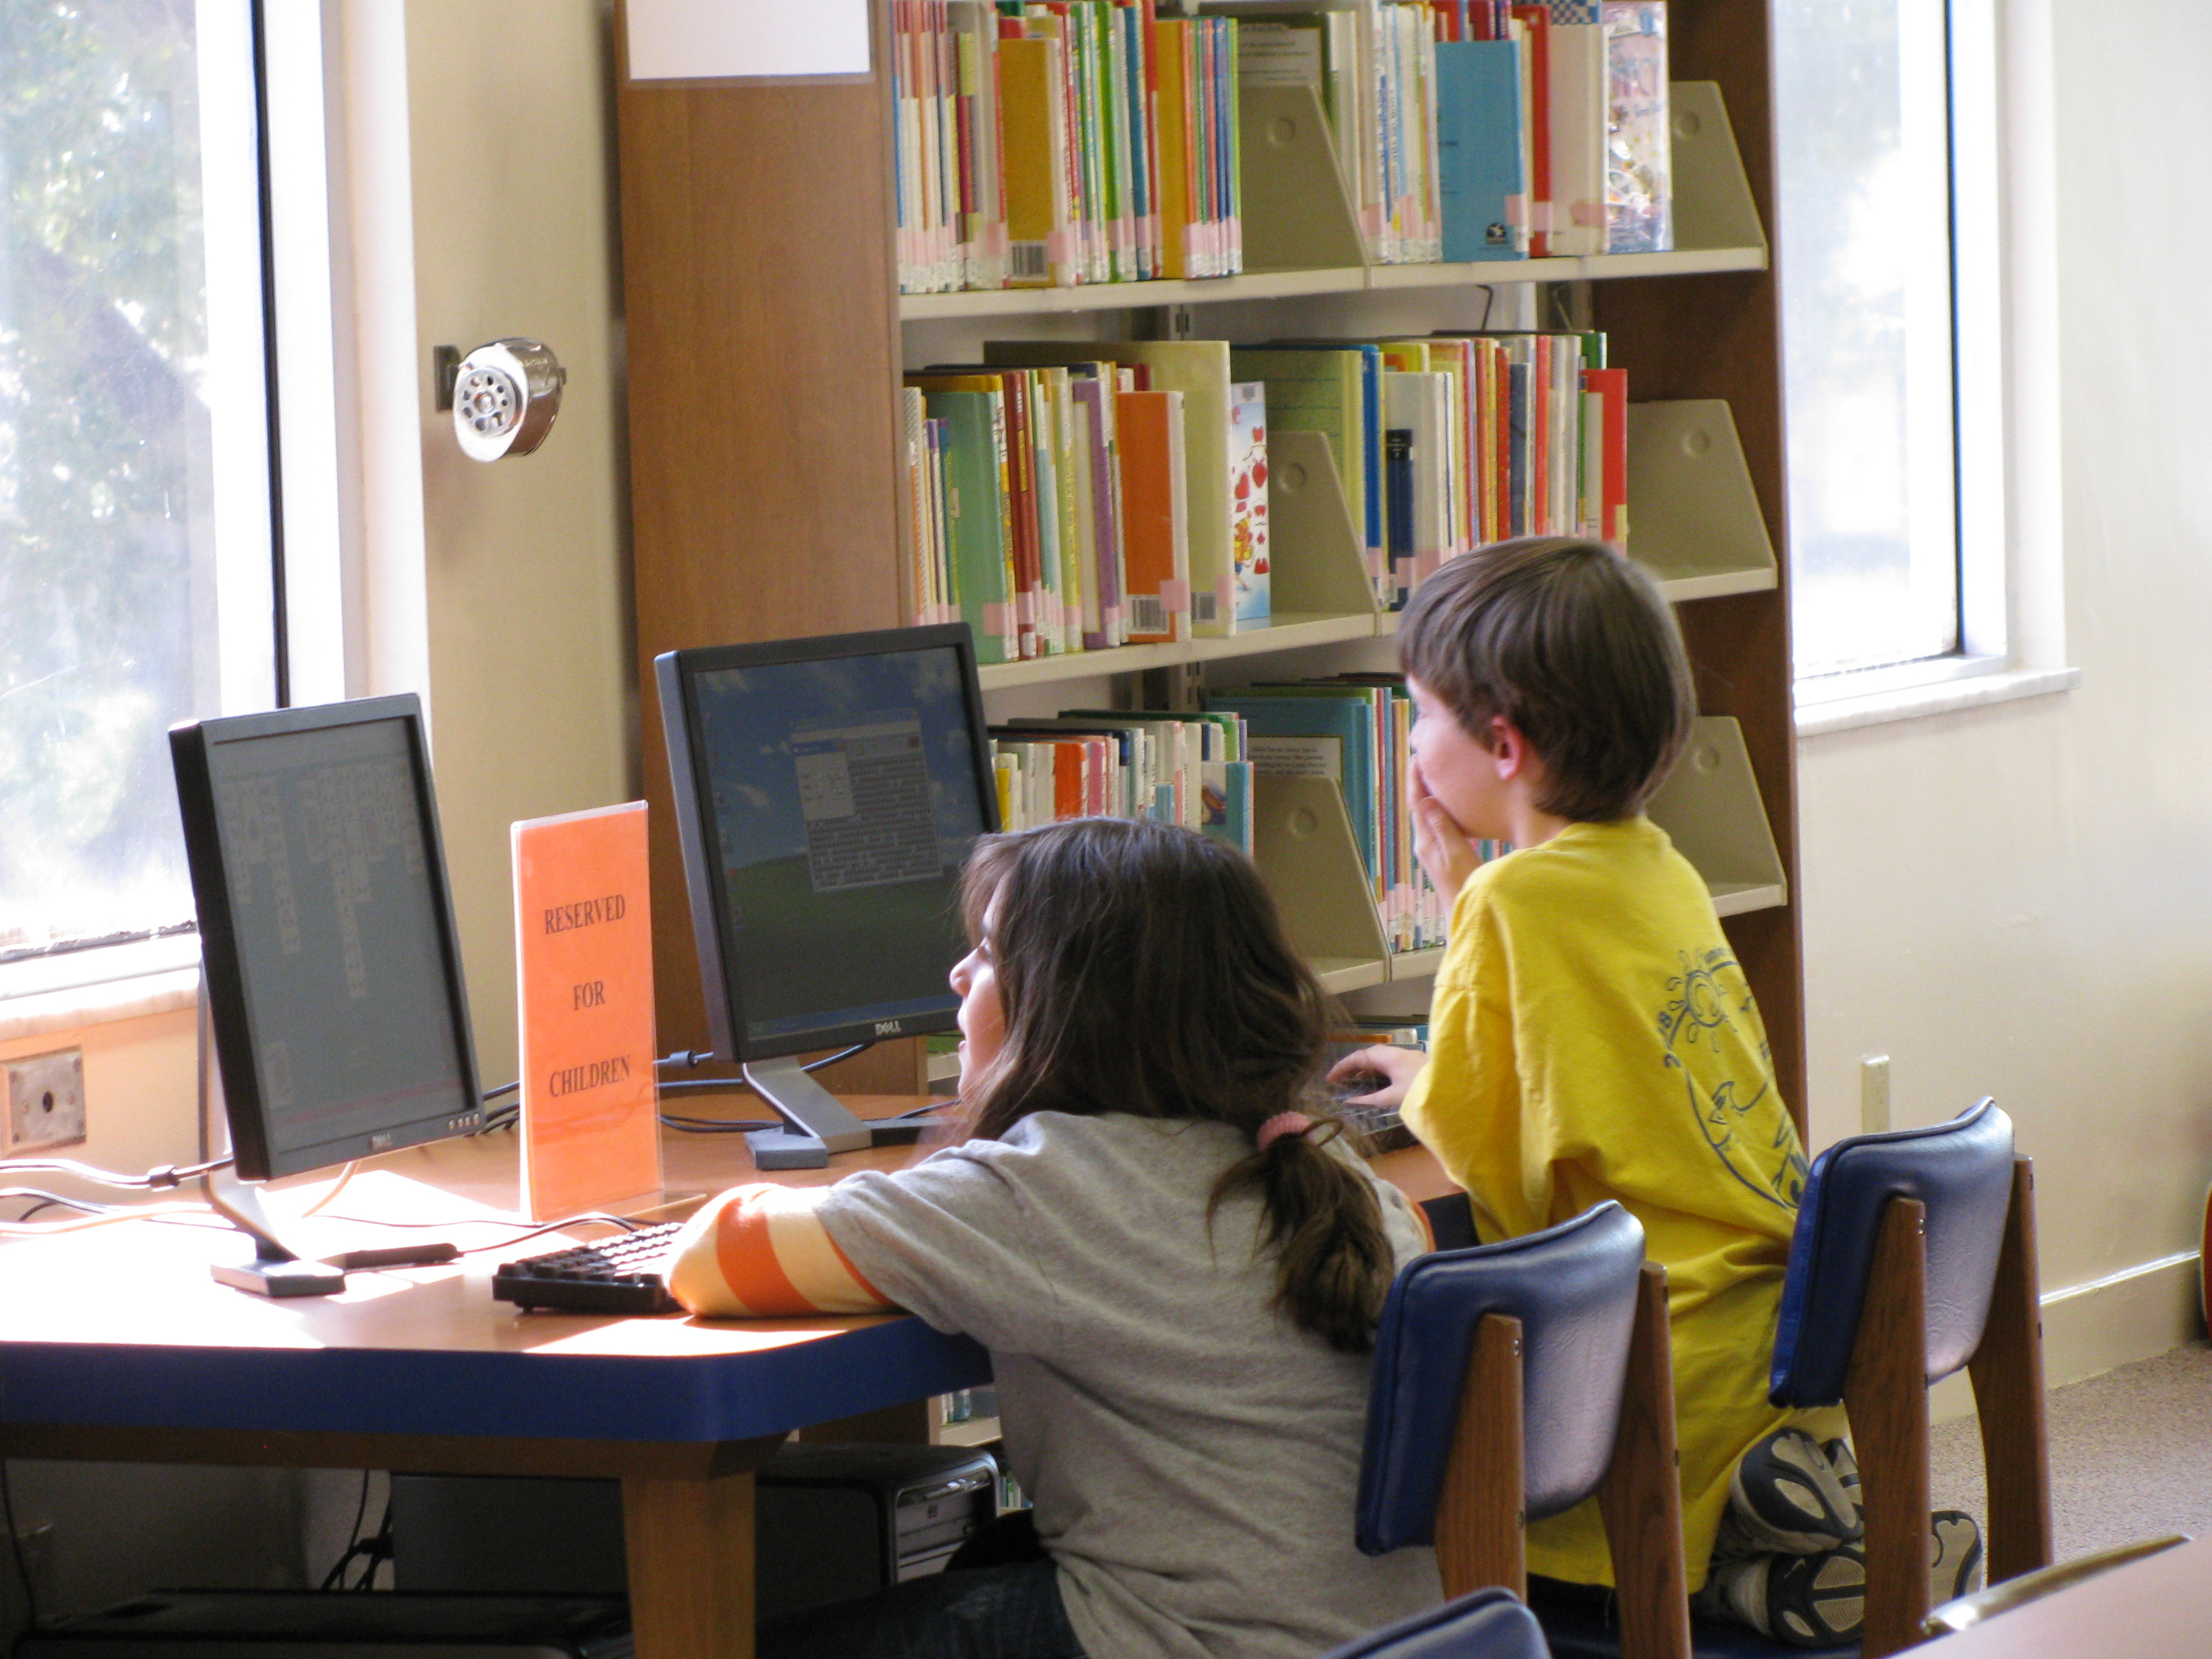 Children sitting at wooden desk on computers